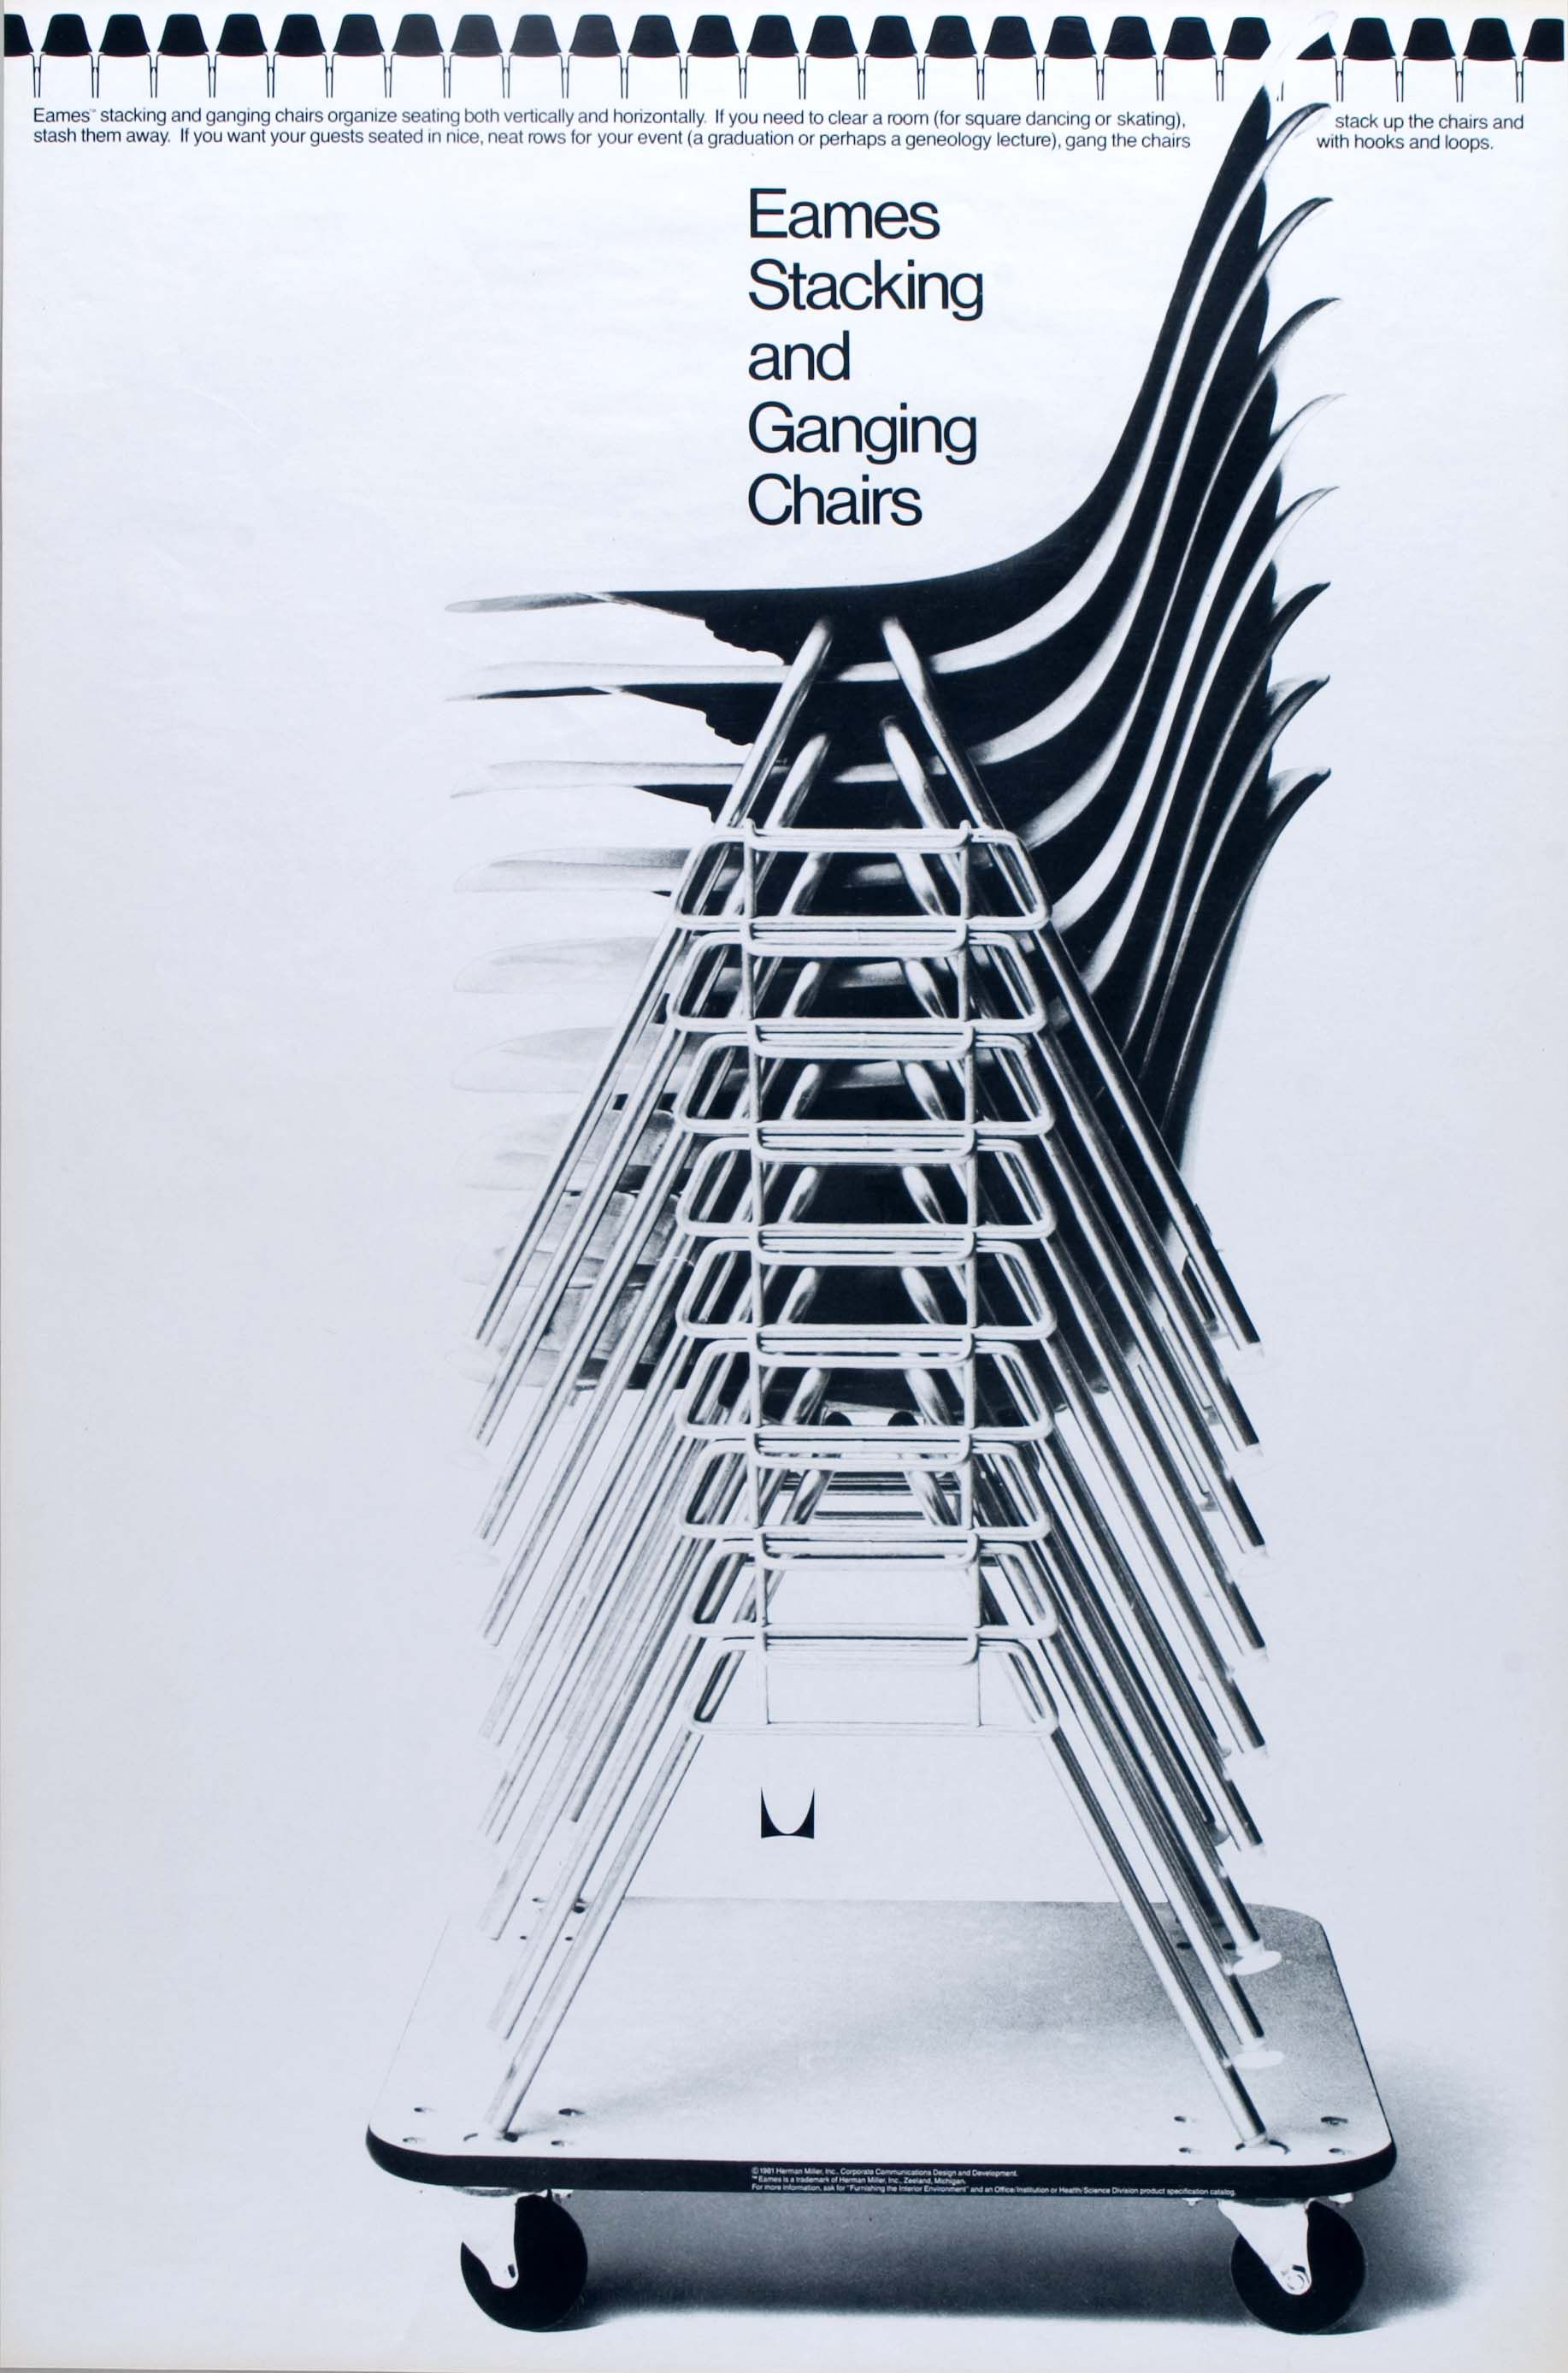 Eames Stacking And Ganging Chair Poster Circa 1960. Charles And Ray Eames  Designed The Dolly